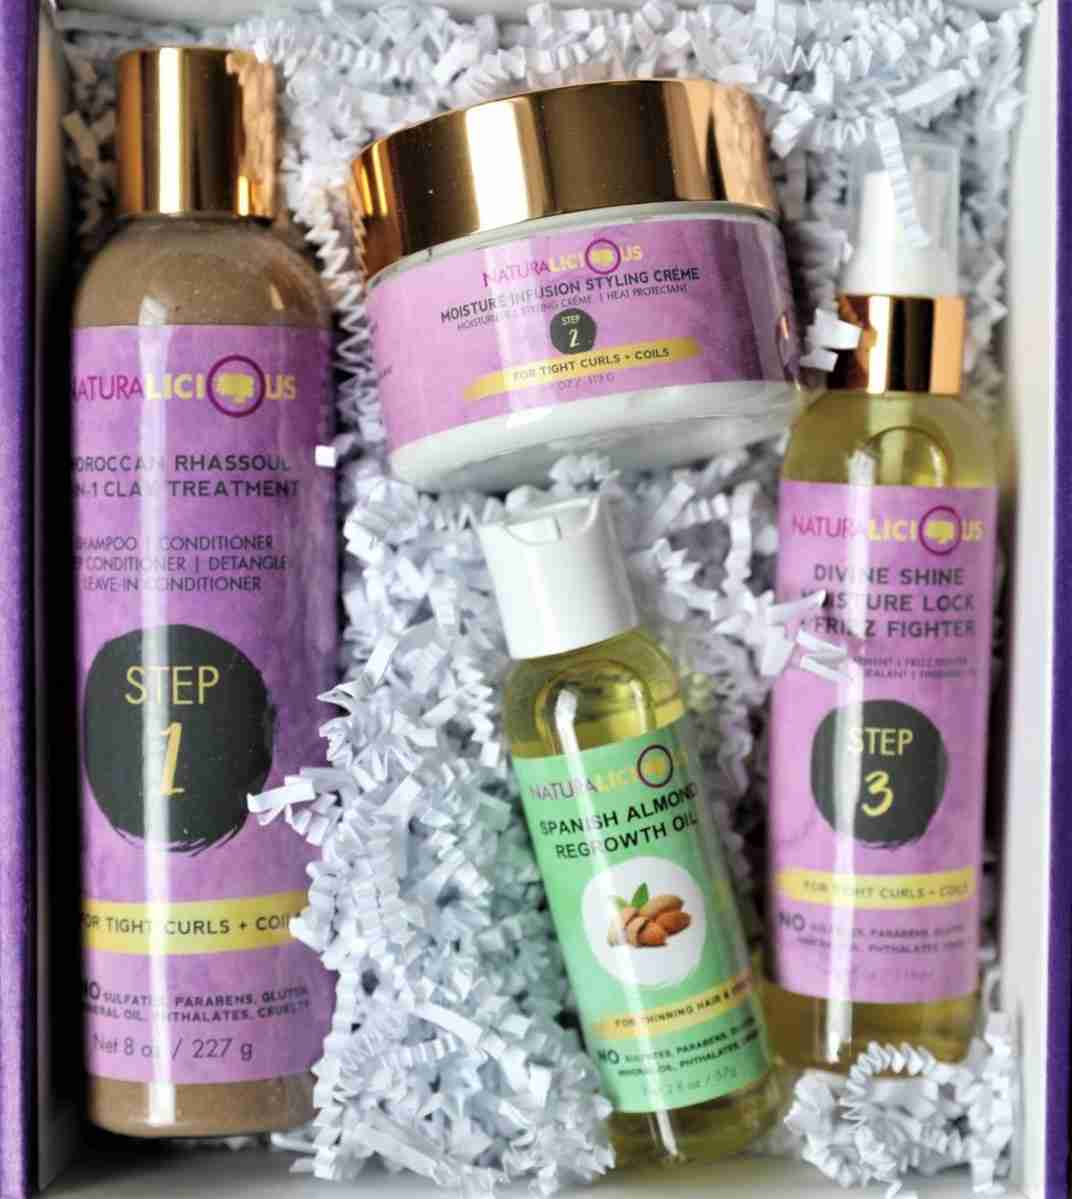 https://naturalicious.net/collections/view-products